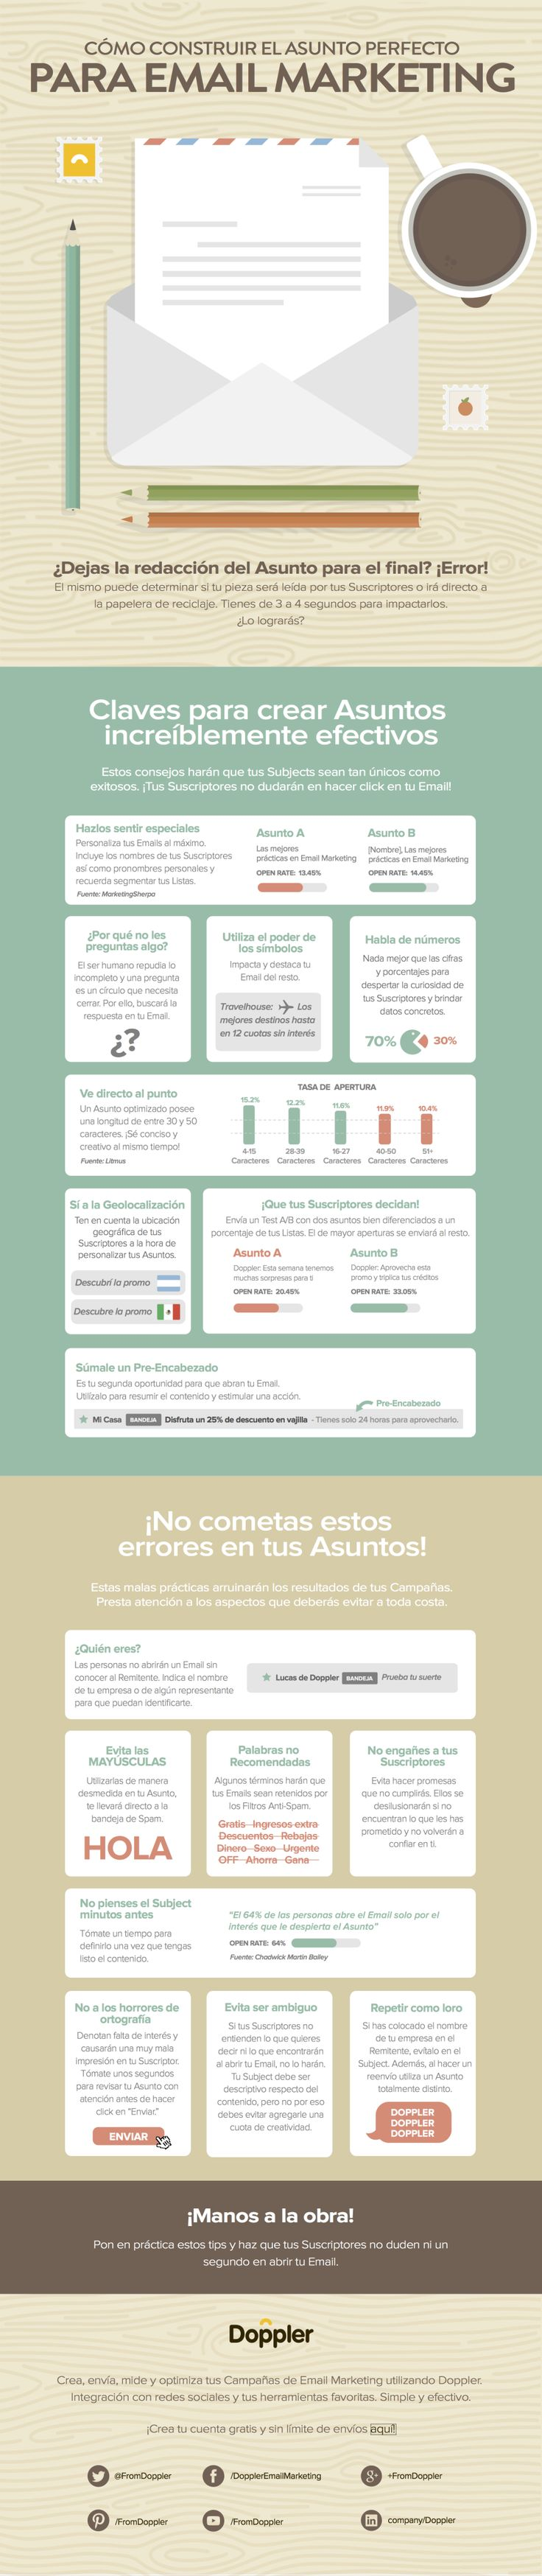 Construye el asunto perfecto para el email marketing #infografia #infographic #marketing